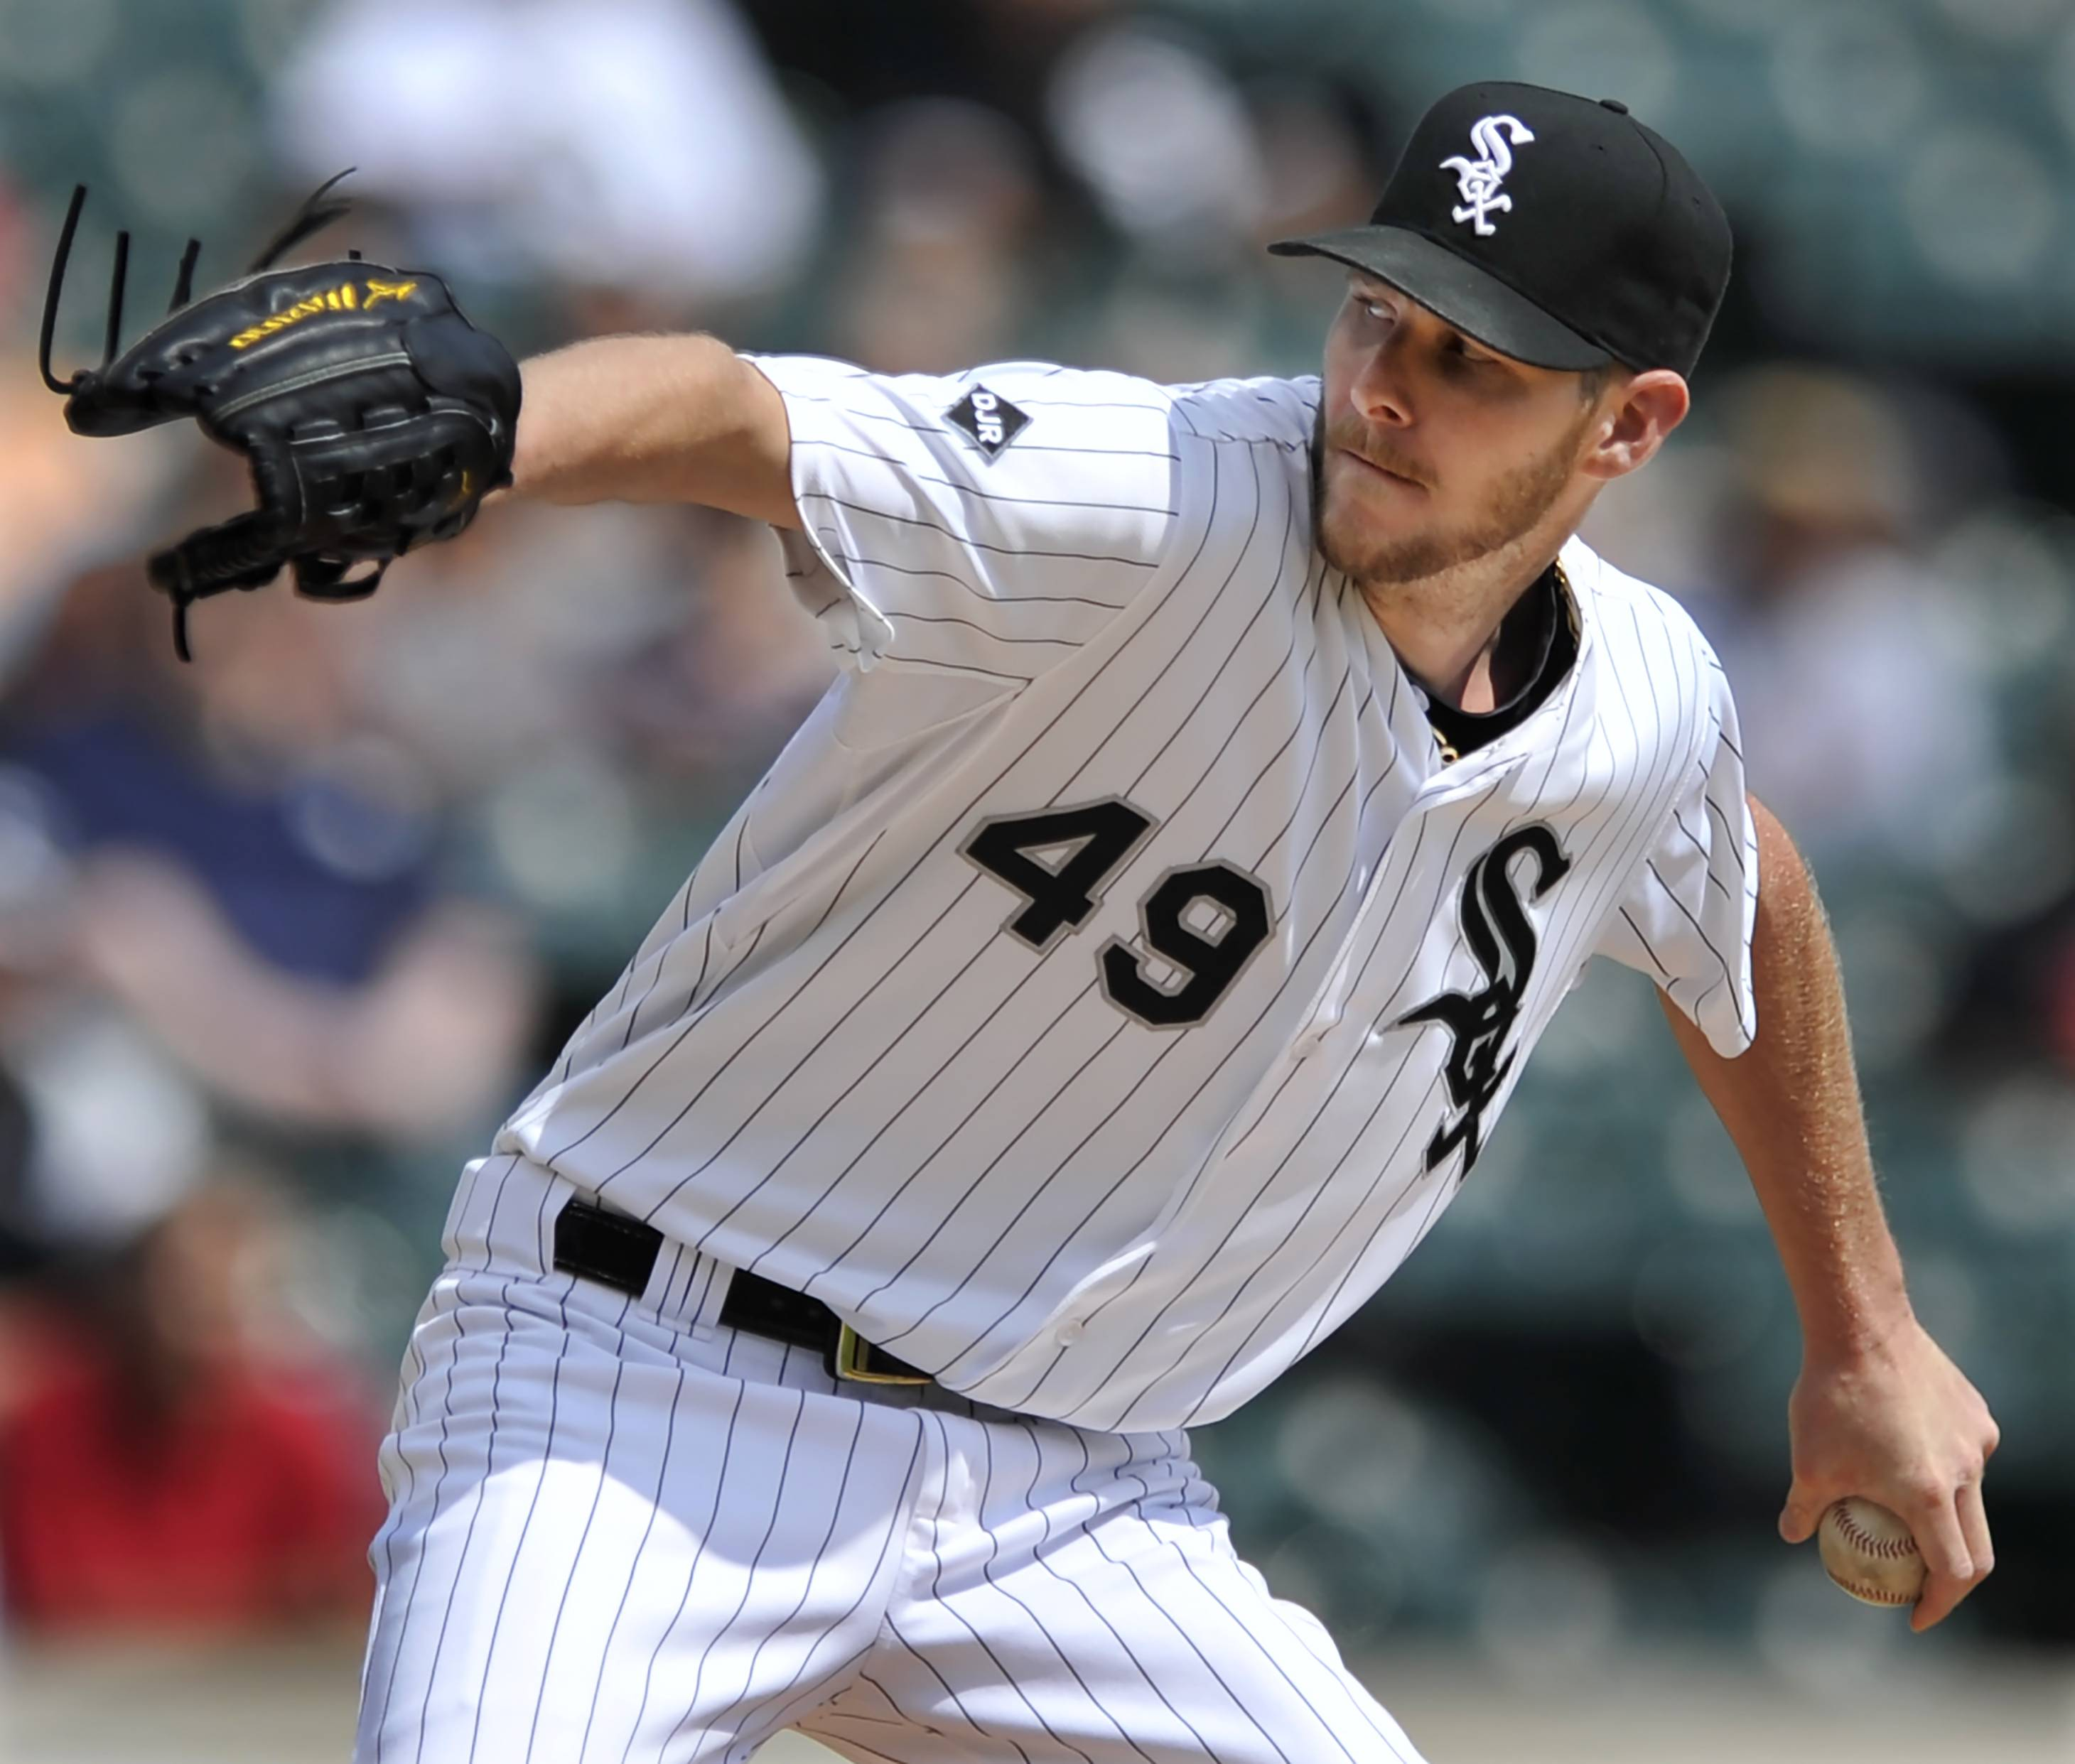 White Sox starter Chris Sale likes how the team is going about trying to be a contender in the near future.